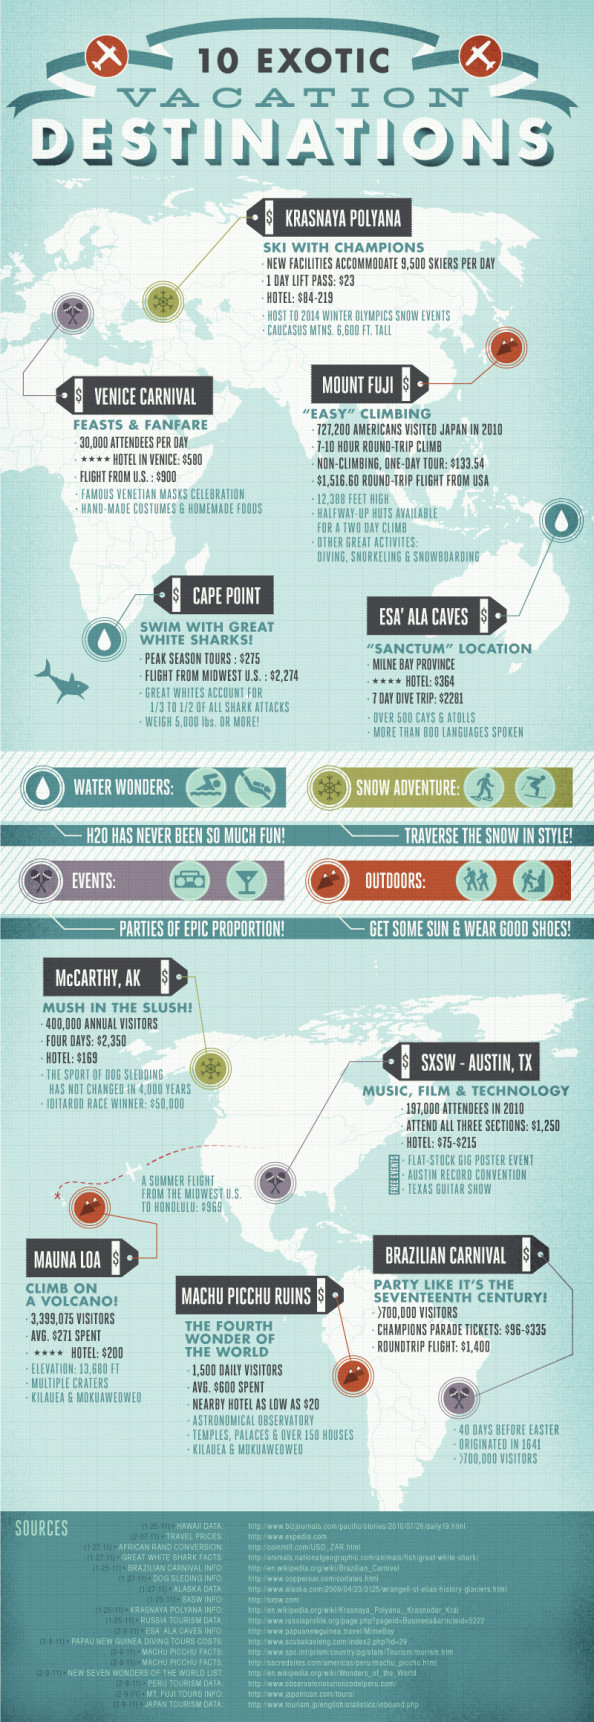 10 Exotic Vacation Destinations Infographic